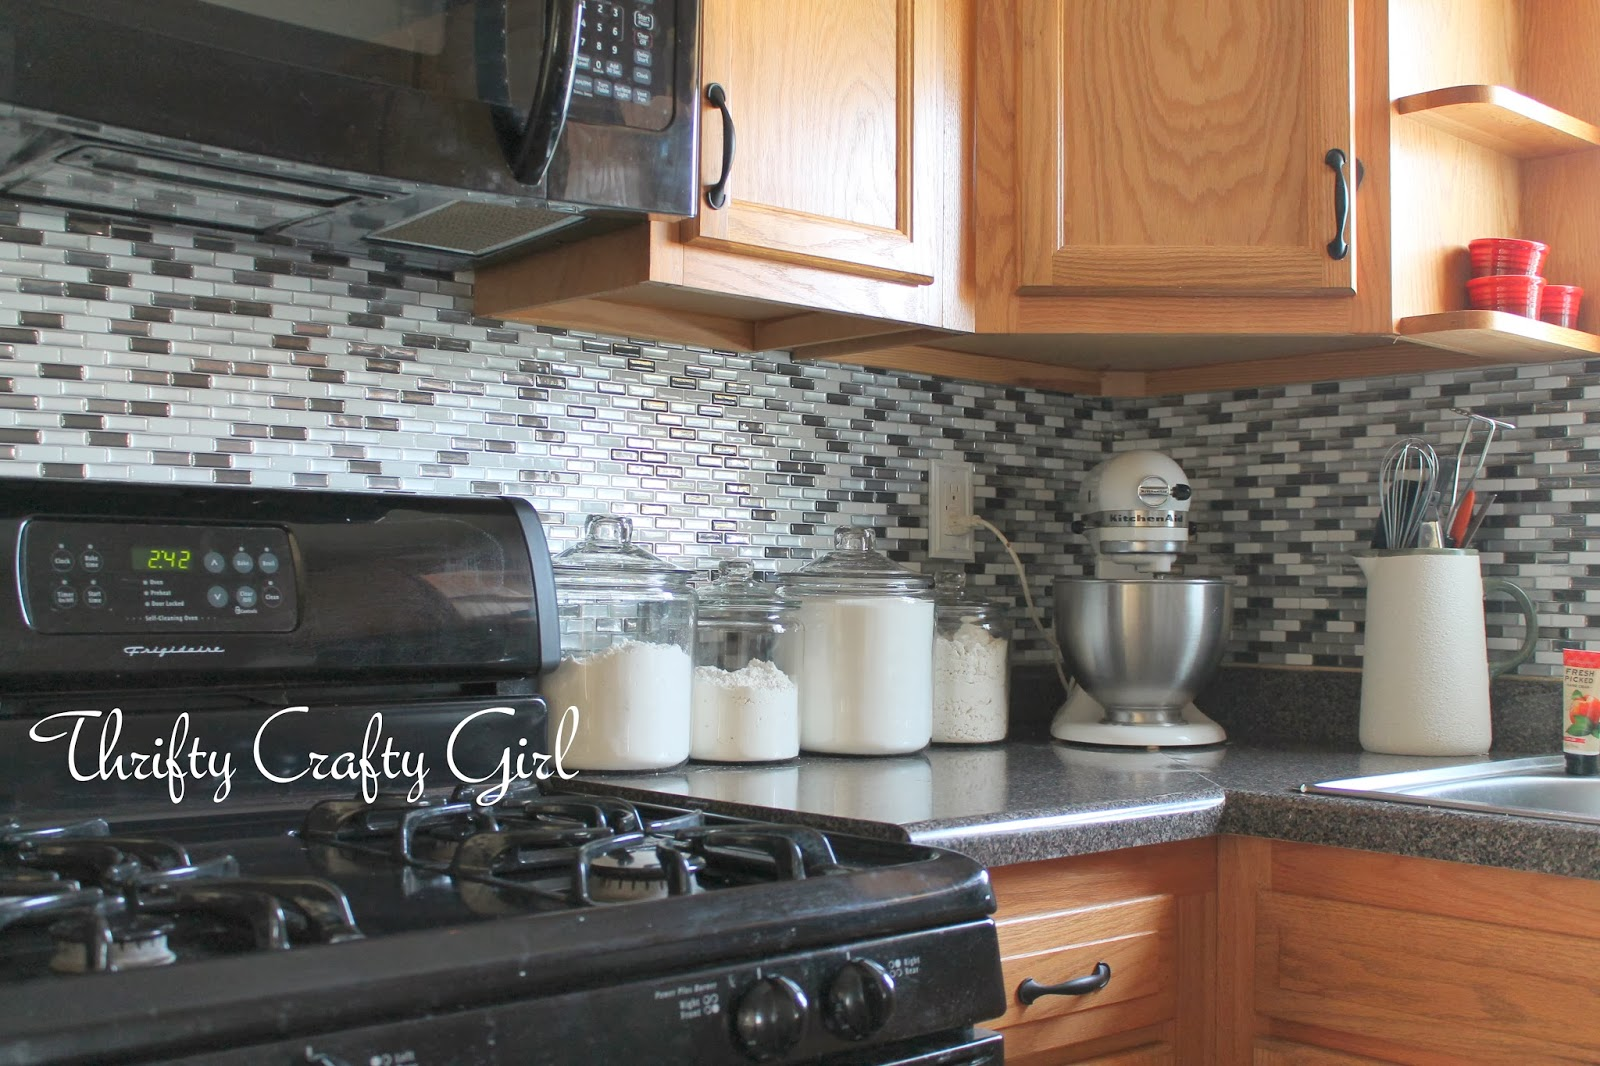 Thrifty crafty girl easy kitchen backsplash with smart tiles easy kitchen backsplash with smart tiles dailygadgetfo Choice Image